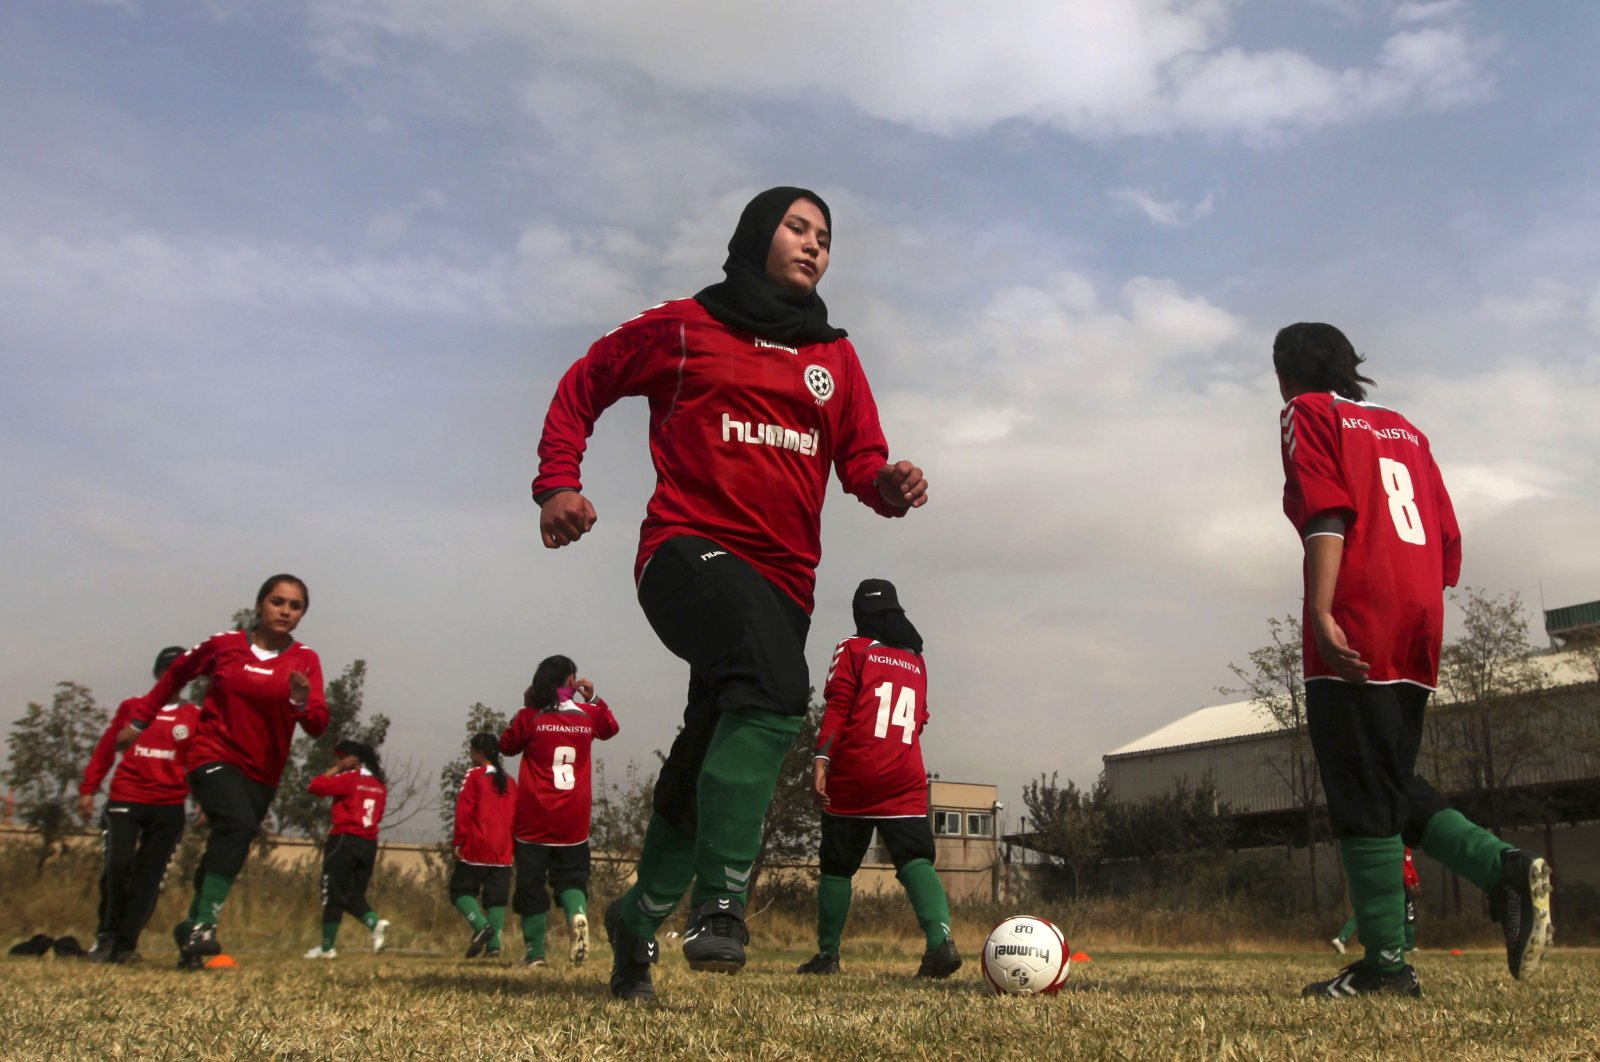 Members of the Afghan women's national football team warm-up before a friendly match against the ISAF (International Security Assistance Force) female football team at the ISAF headquarters in Kabul, Afghanistan, Oct. 29, 2010. (AP Photos)